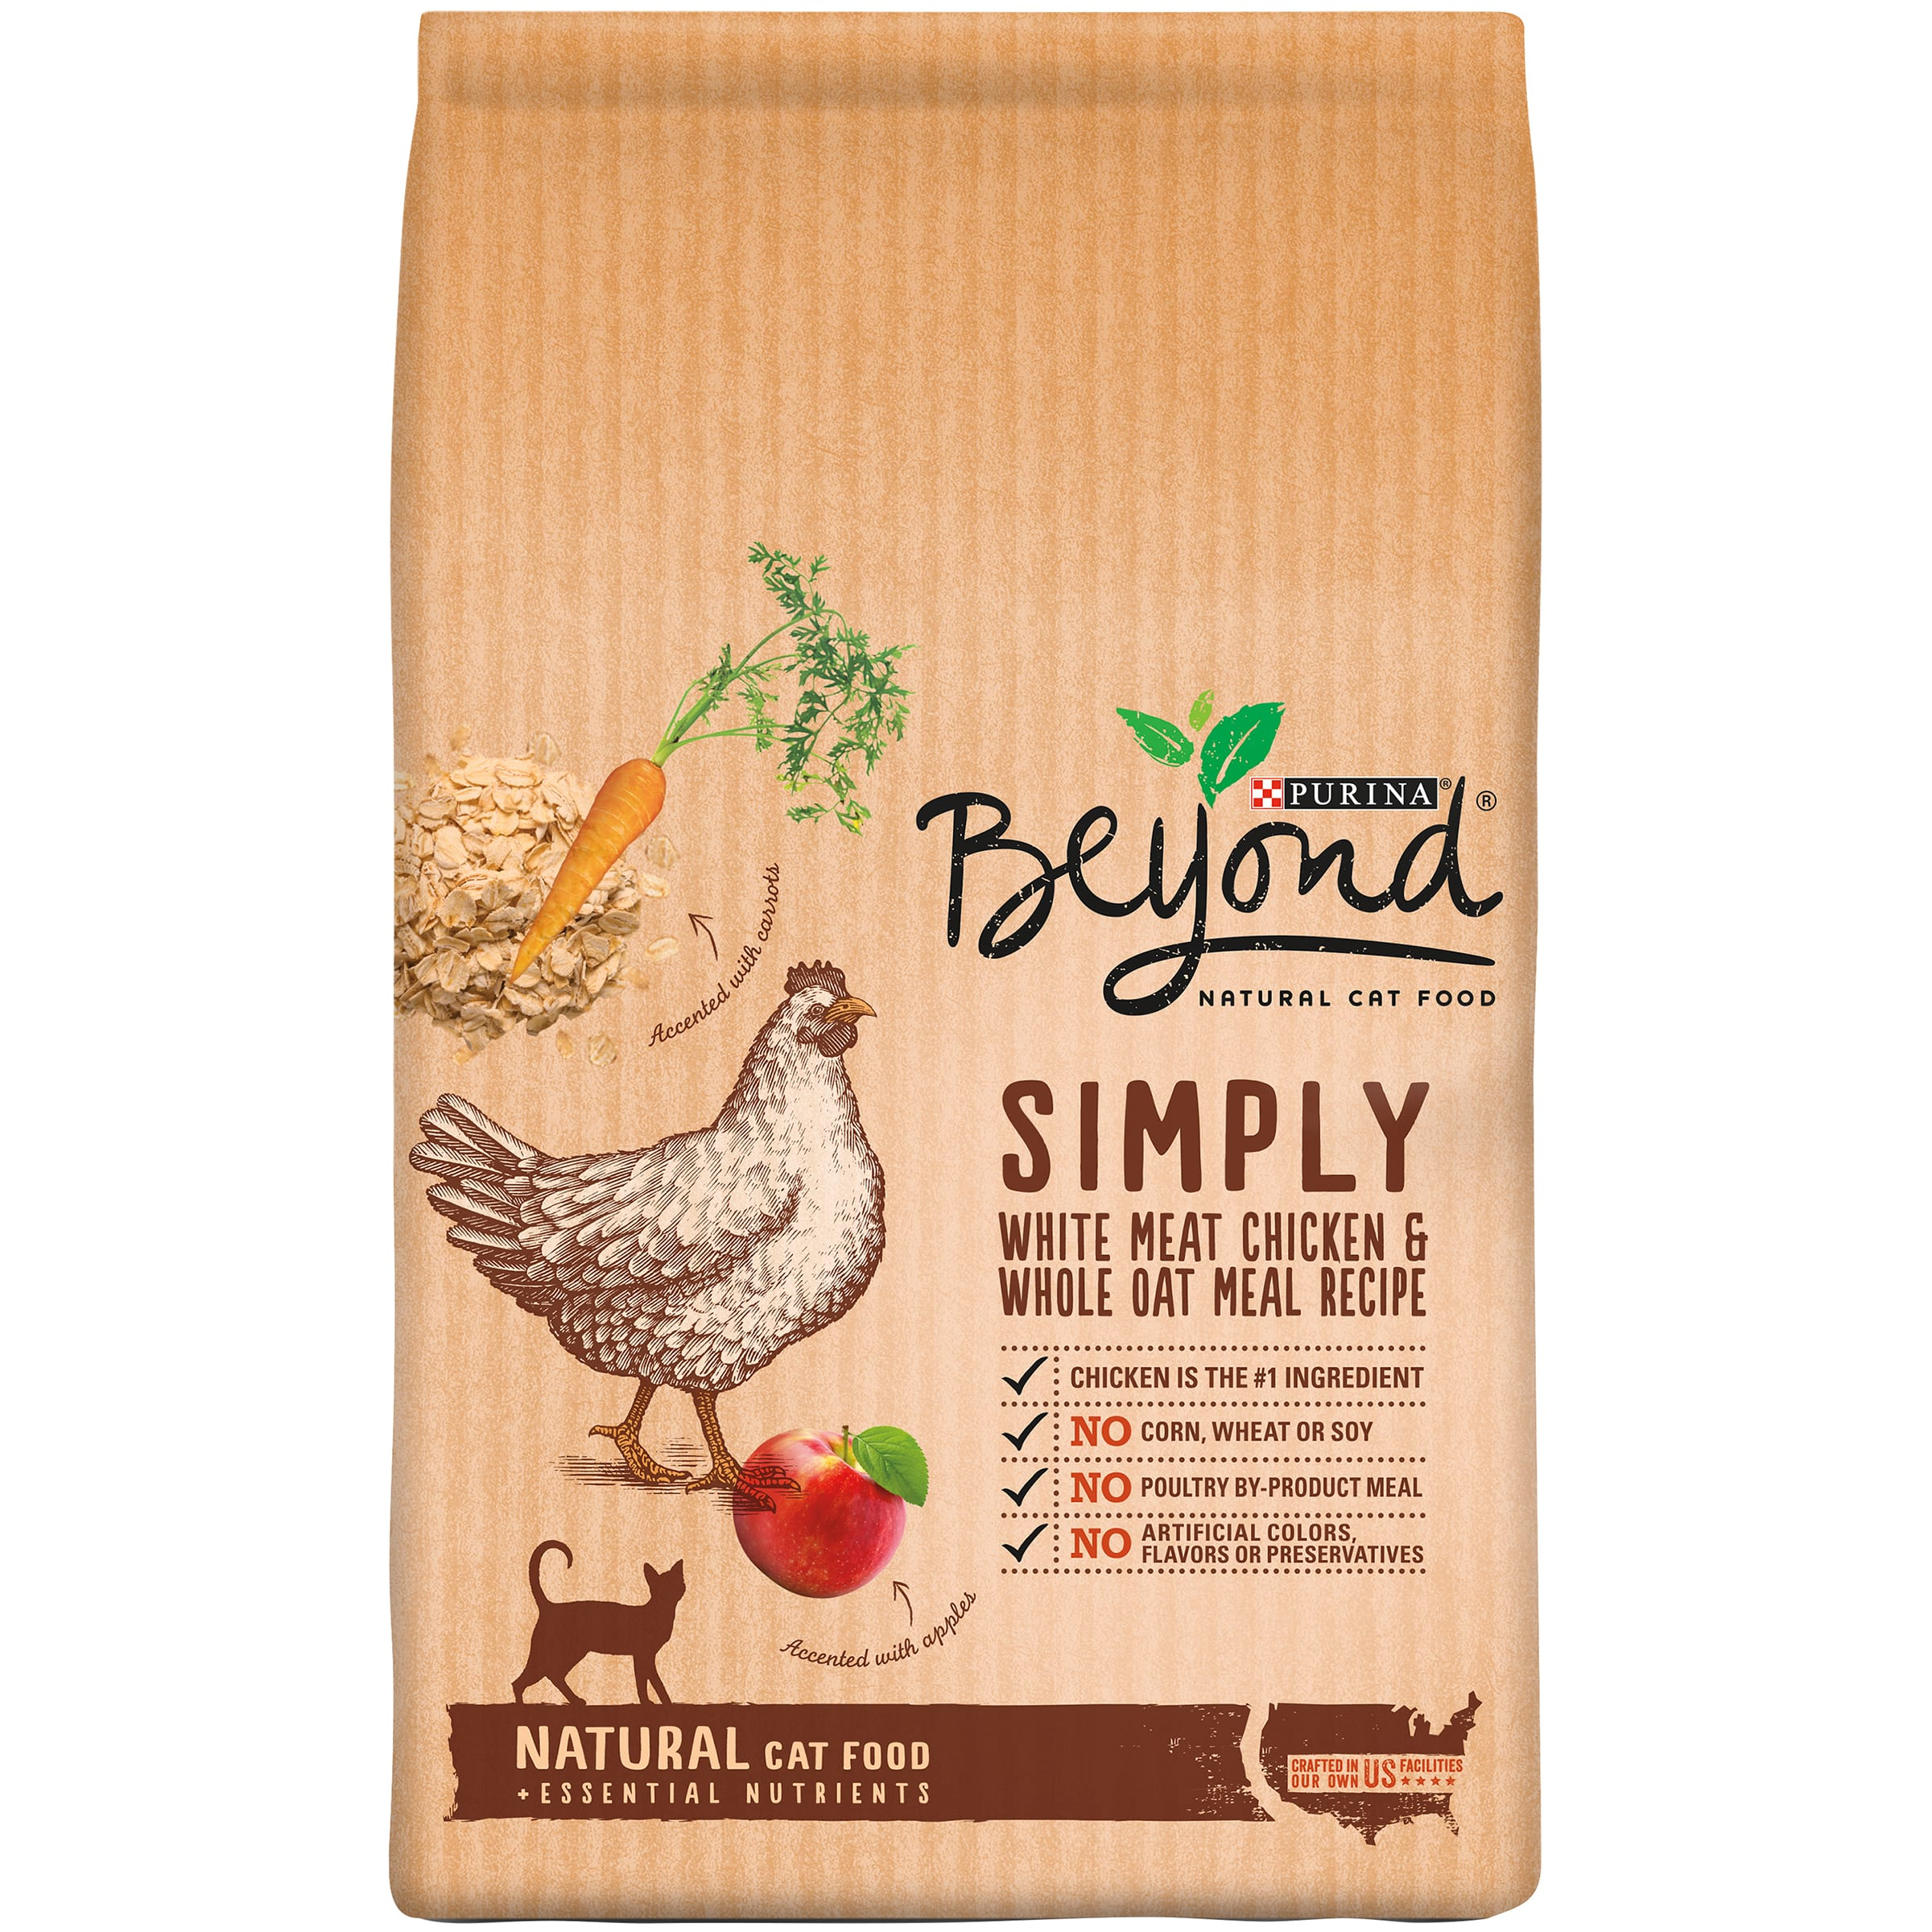 Purina Beyond Cat Food >> Purina Beyond White Meat Chicken Cat Food 3 lb. Bag x 2 = $12 + $5 Target GC - Slickdeals.net